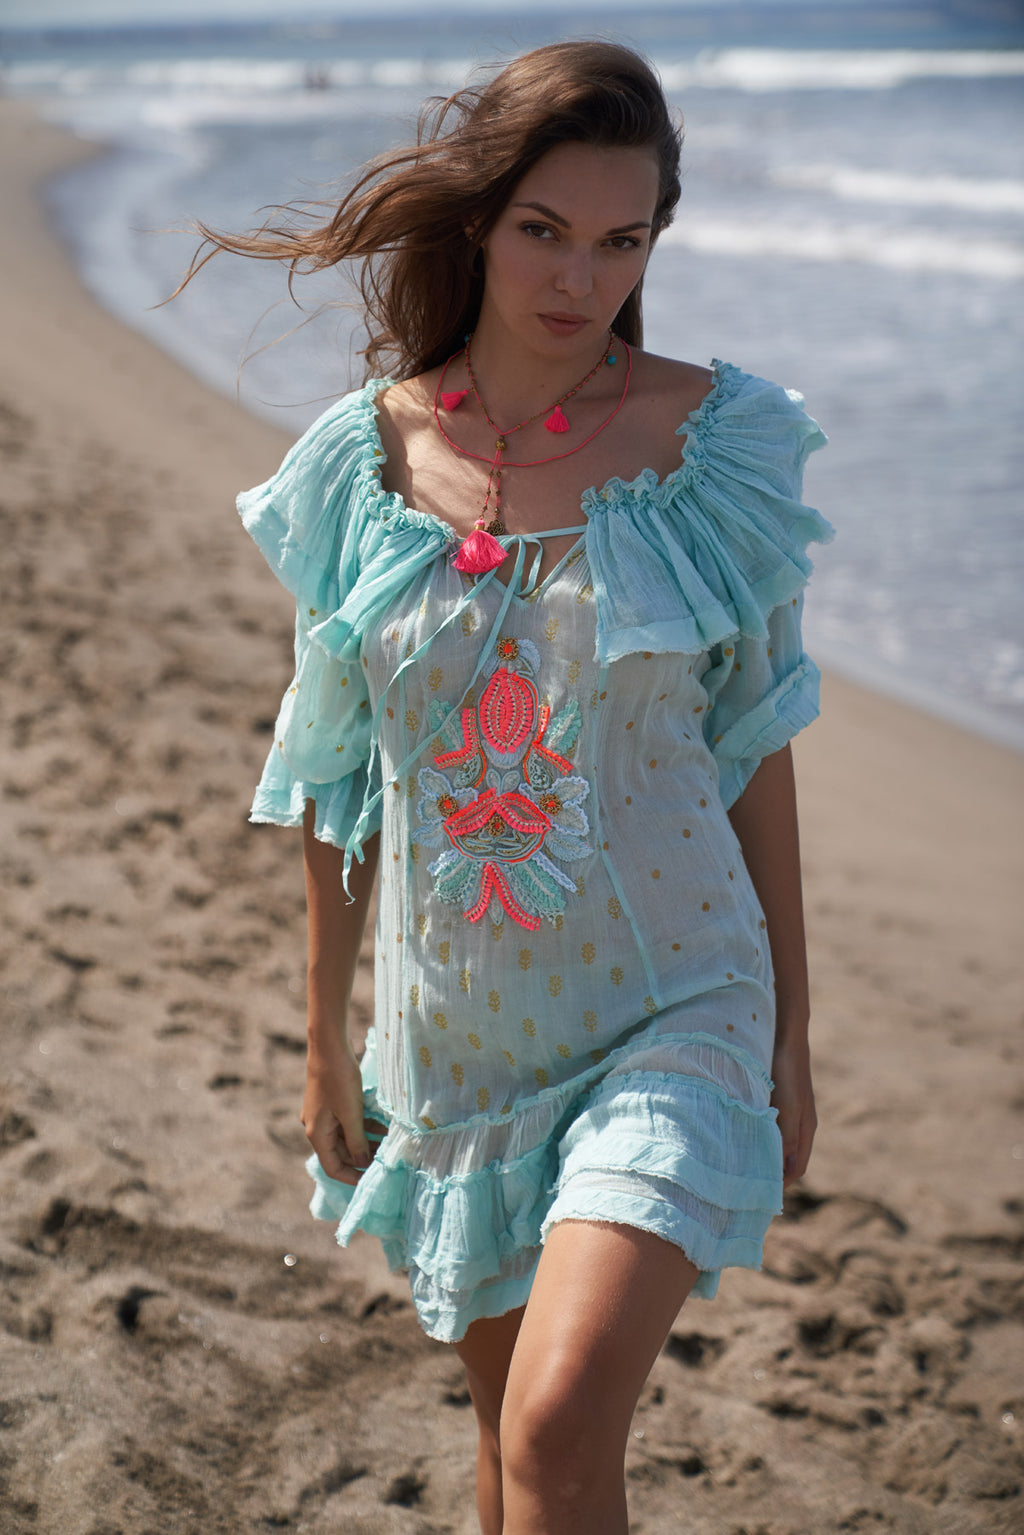 Boho style aqua blue dress with neon pink details